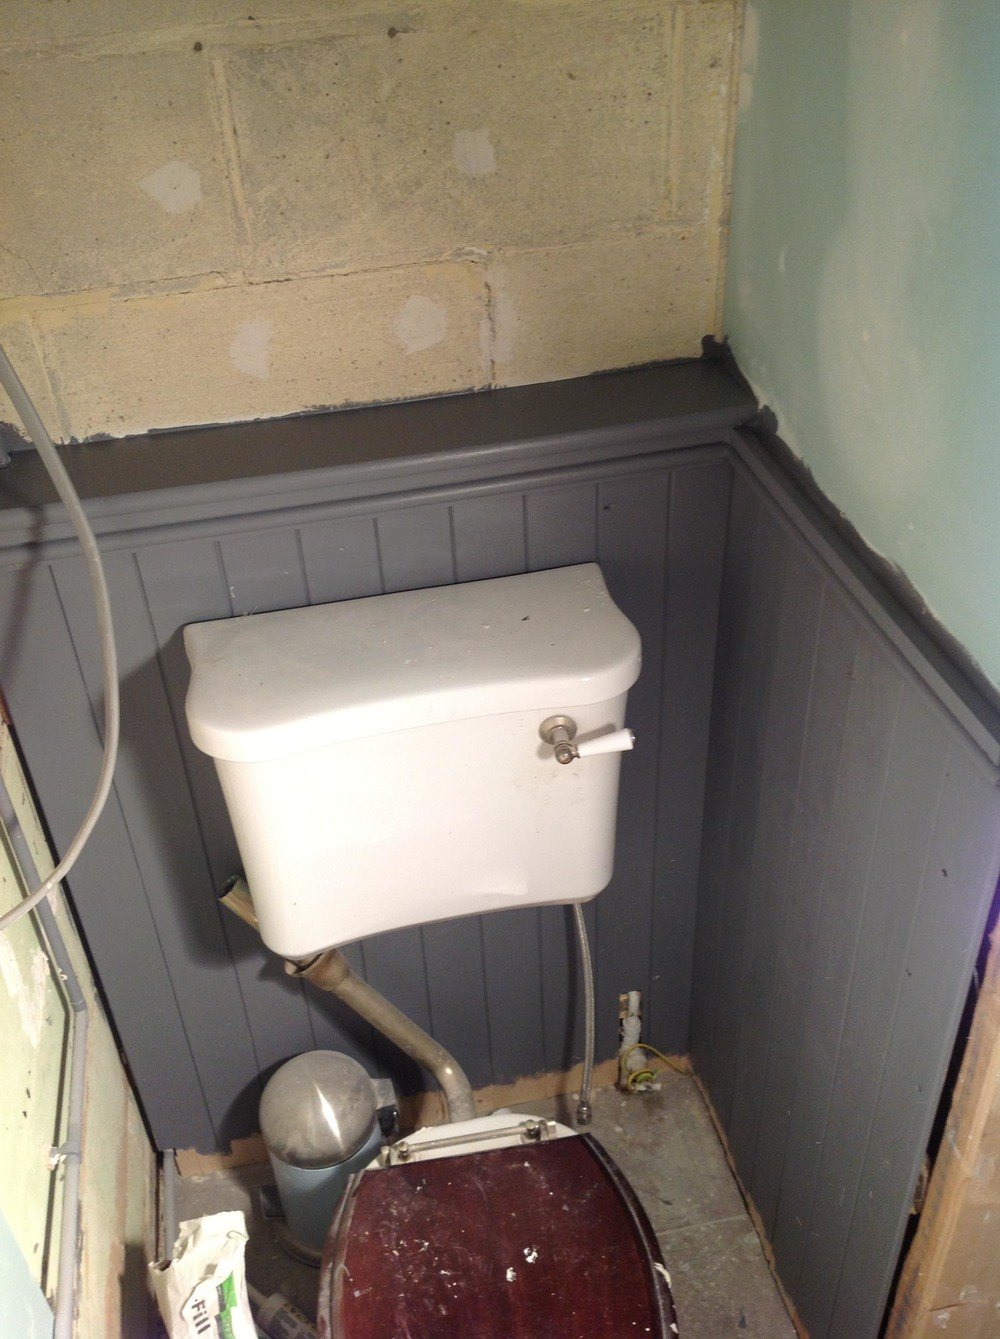 A new toilet cistern was attached to painted wooden paneling to configure with the old drainage.